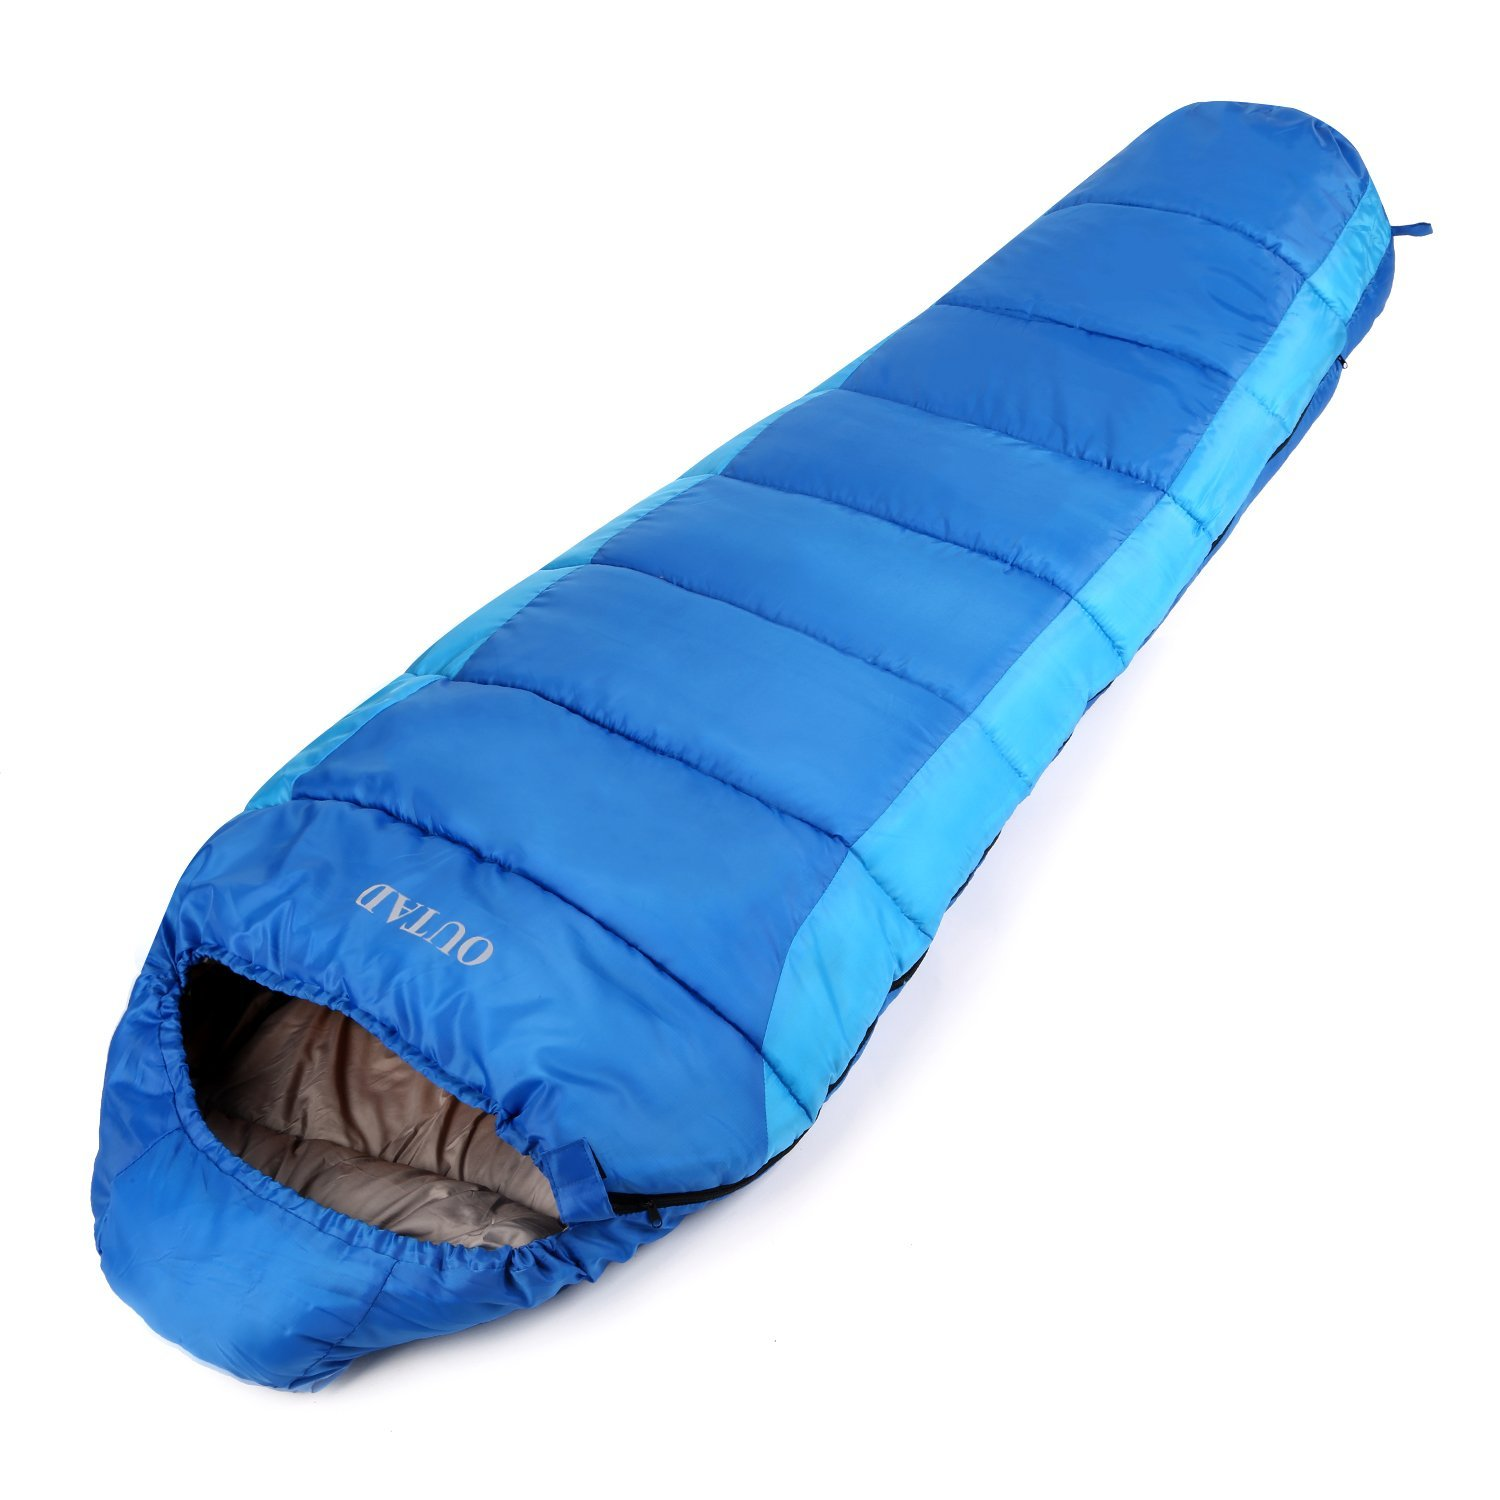 OUTAD Outdoor Mummy 40-50 Degree Portable Sleeping Bag for Camping/Hiking/Backpacking